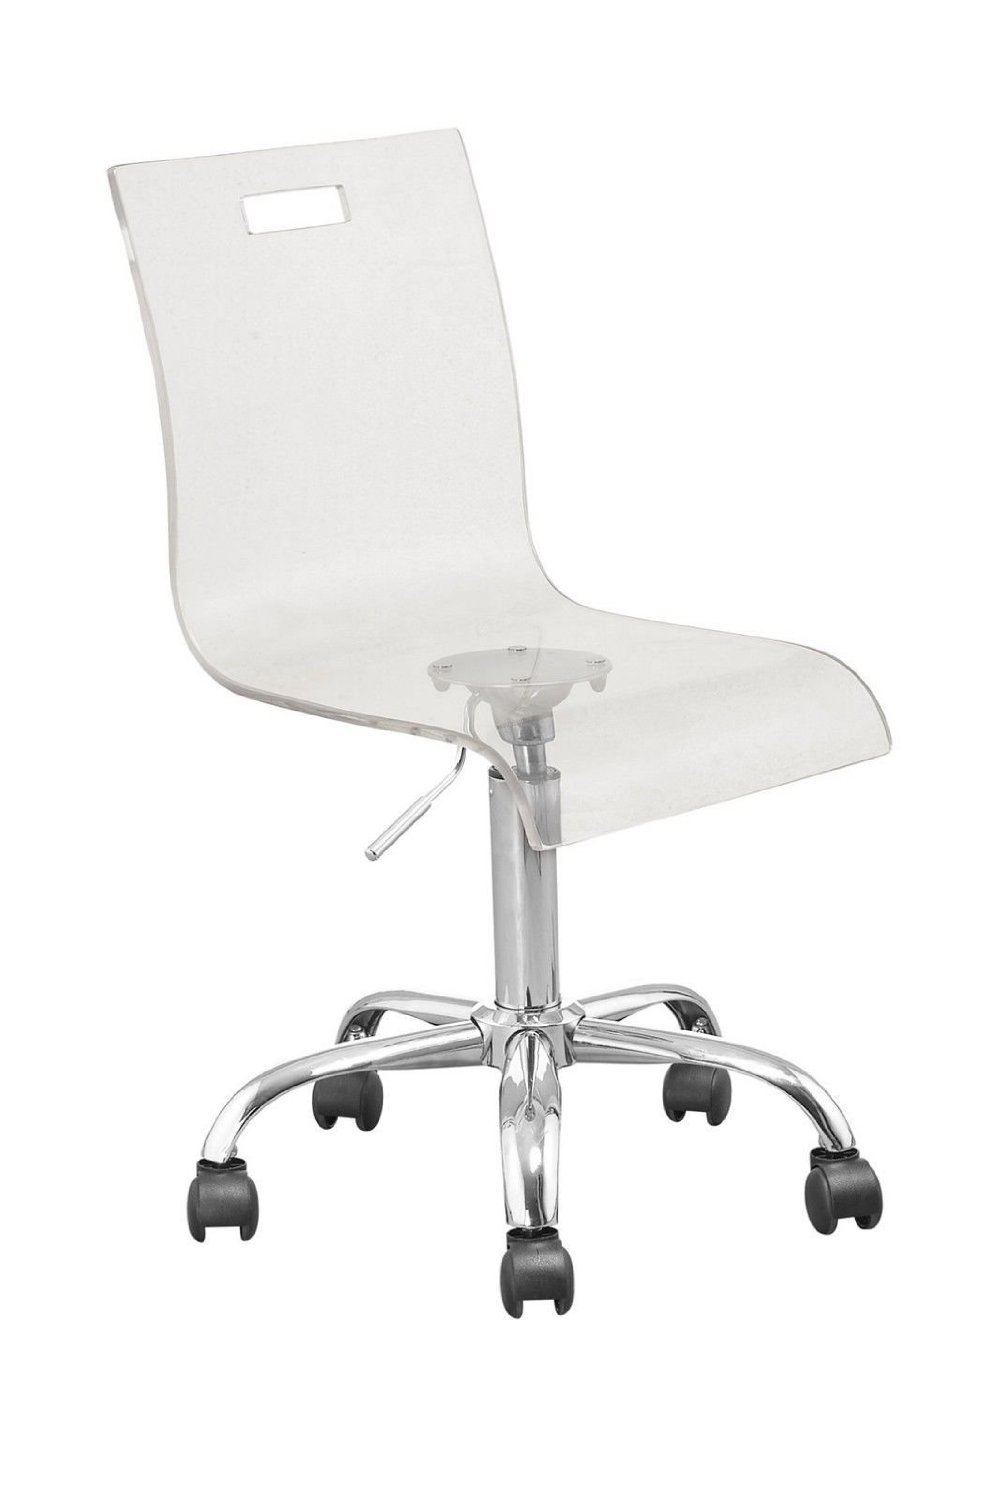 Amazon.com: Retro Acrylic Hydraulic Lift Adjustable Height Swivel Office  Desk Chair Clear (7009): Office Products